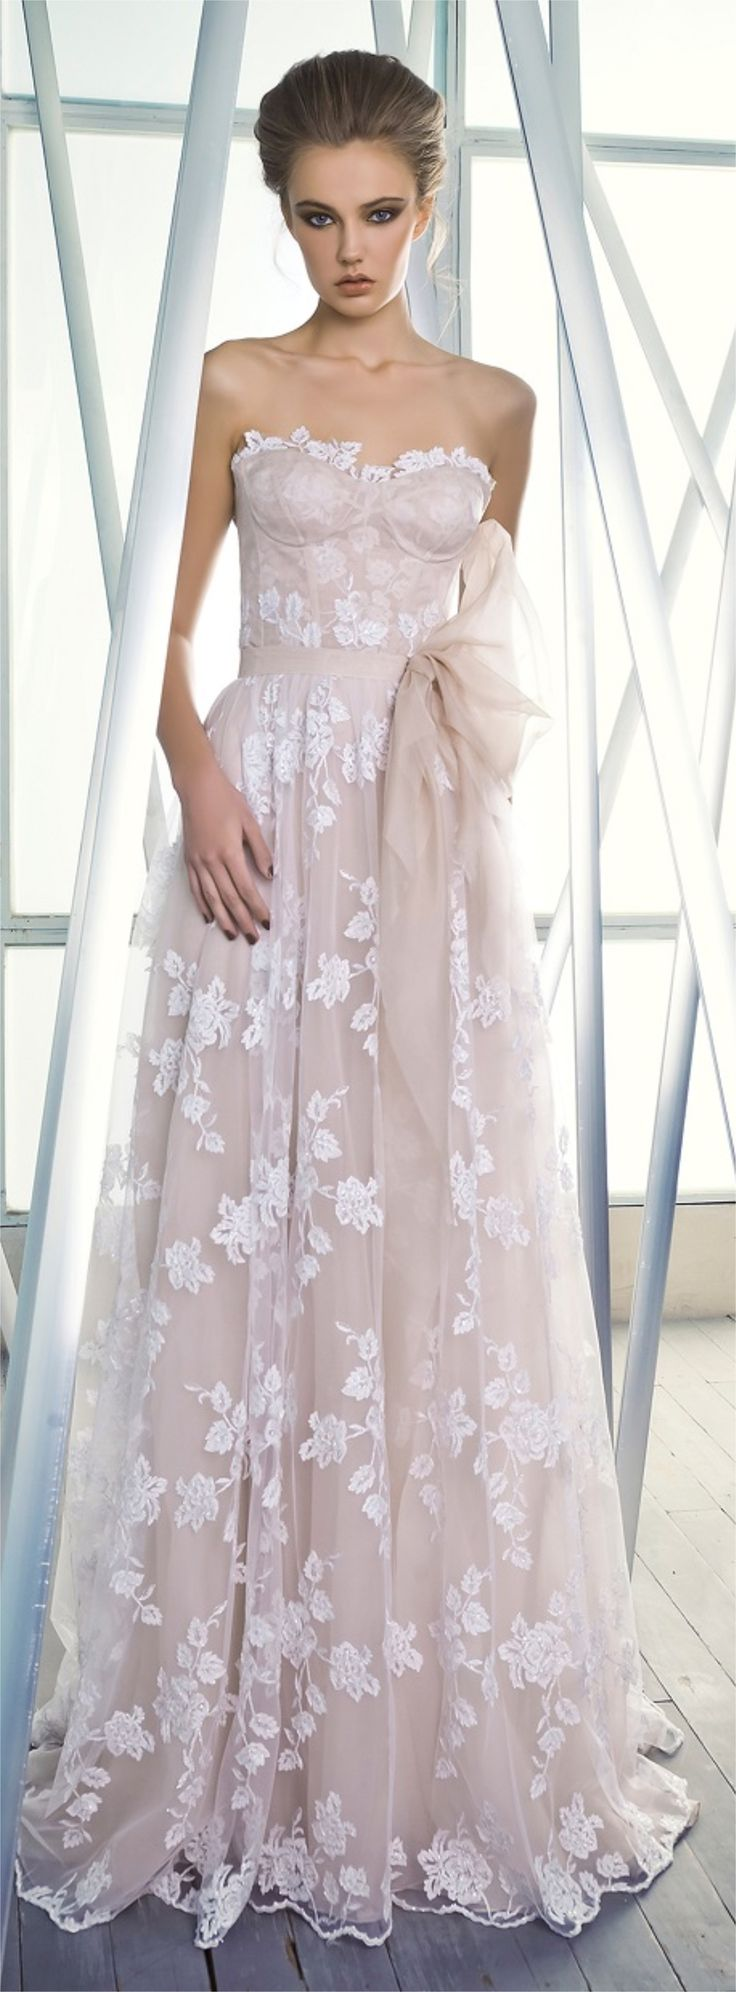 Mira Zwillinger - Charlotte | Would you stray away from the traditional wedding gown with this gorgeous dress?